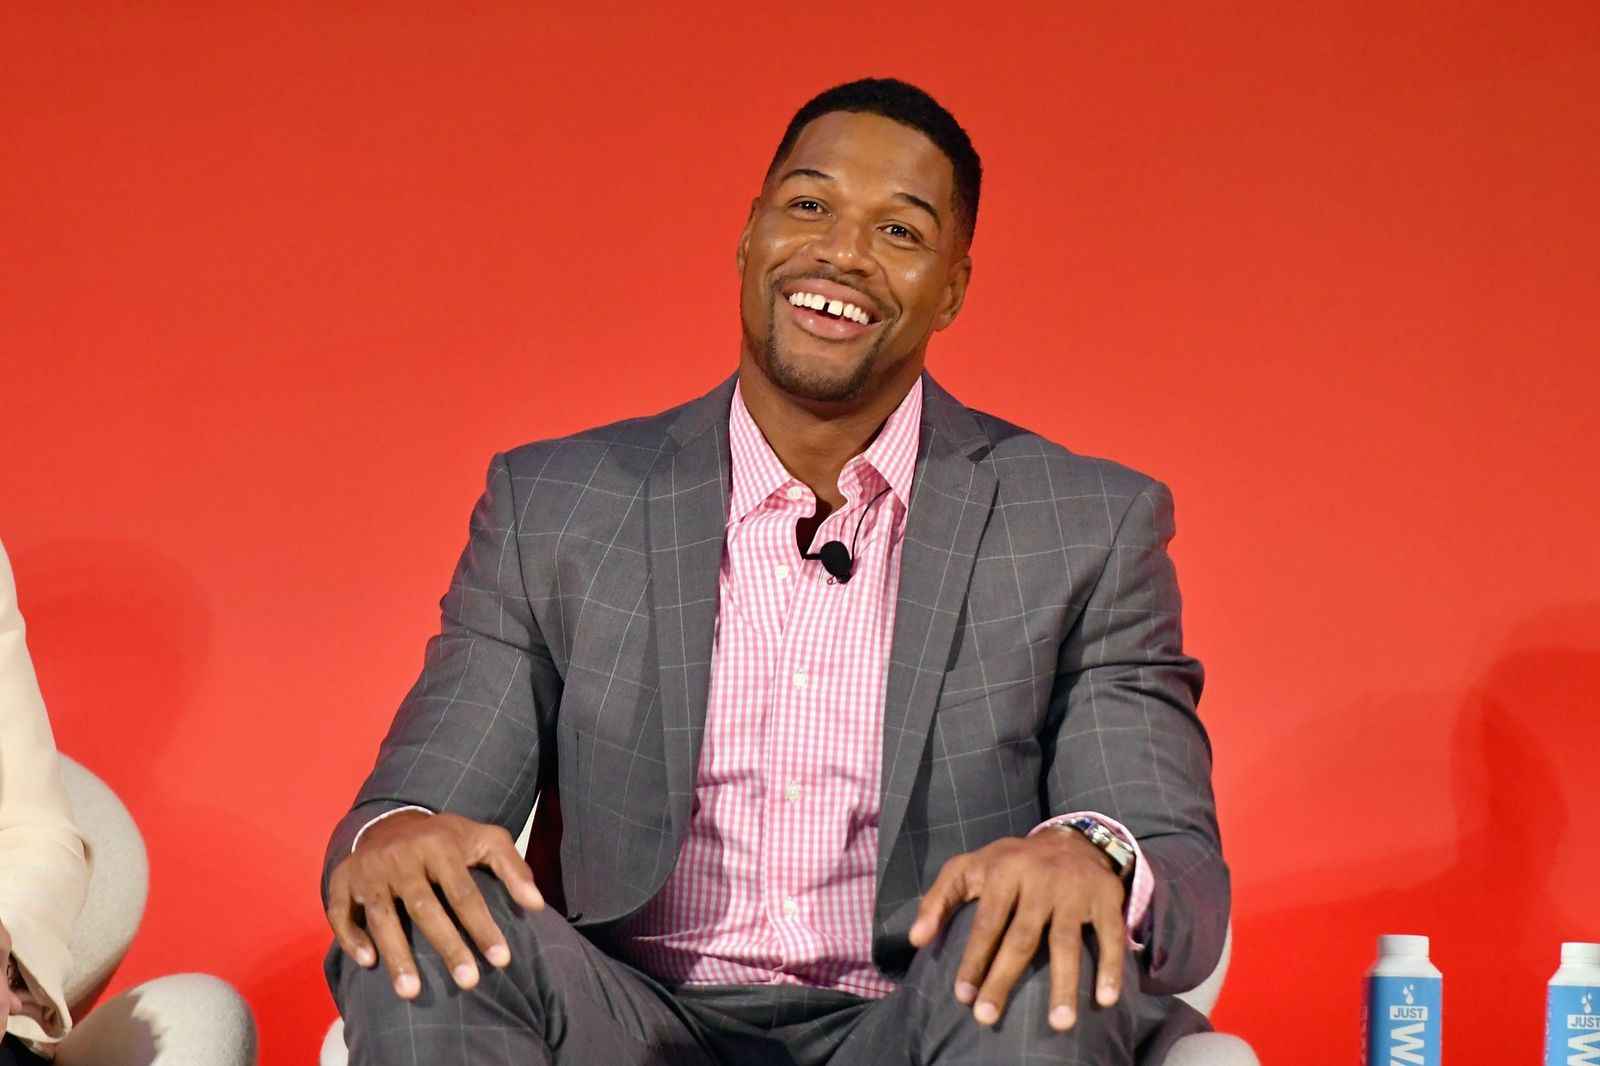 Legendary Super Bowl Champion & Emmy-nominated Fox NFL Sunday Analyst Michael Strahan speaks onstage at the Fox NFL Town Hall panel at The Town Hall during the  2016 Advertising Week in New York on September 28, 2016 in New York City. | Photo: Getty Images